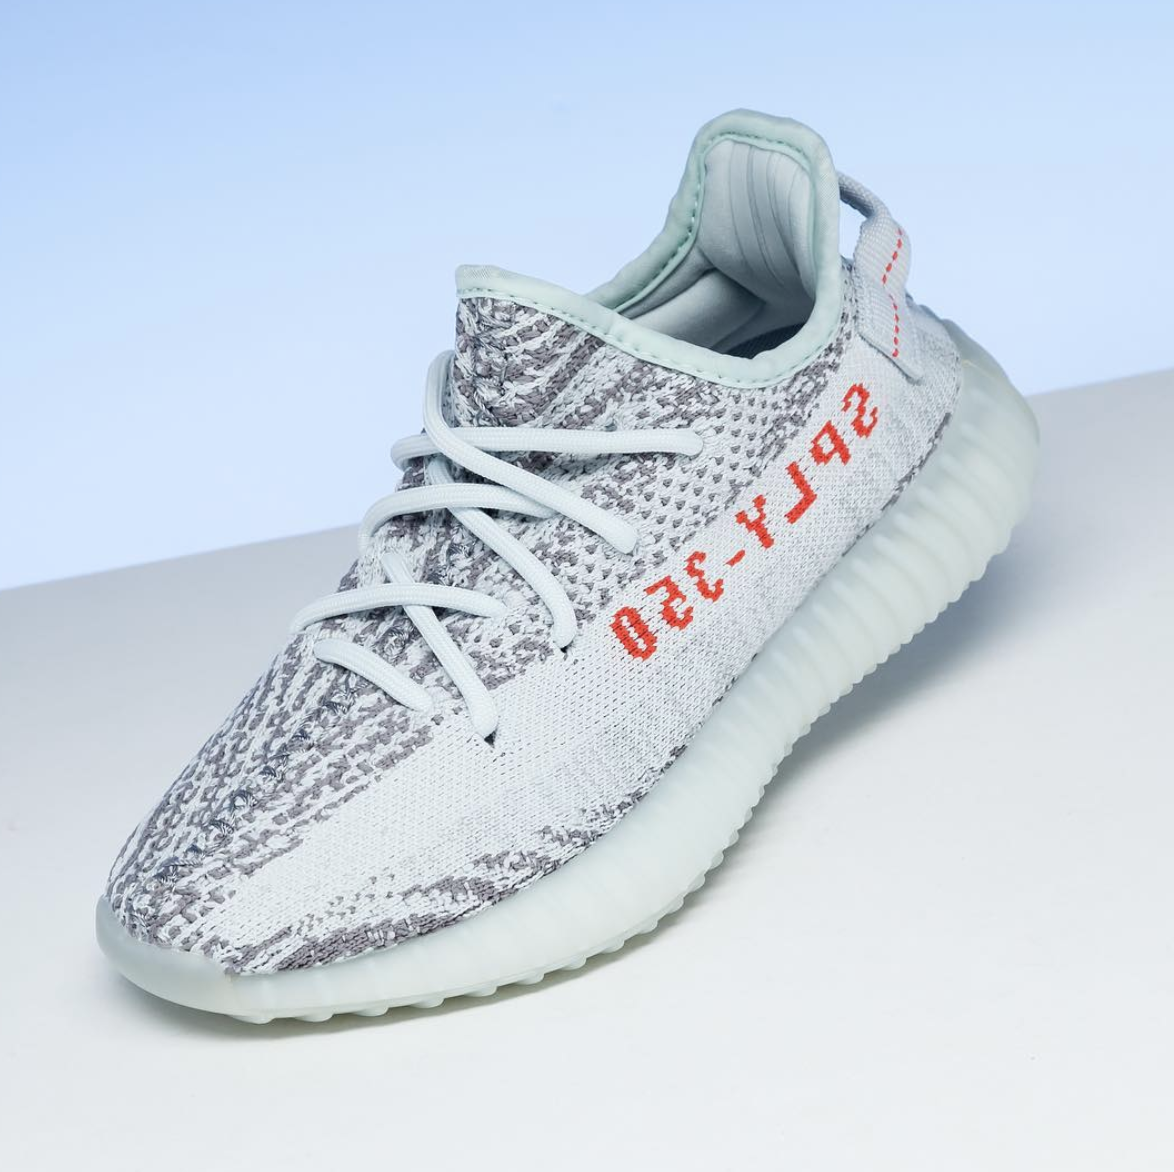 sports shoes 76f63 f7a1c This guide shows how to tell between fake and real Yeezy Boost 350 V2 Blue  Tint size tag. Note that this is one LC guide that s part of a checklist —  see ...